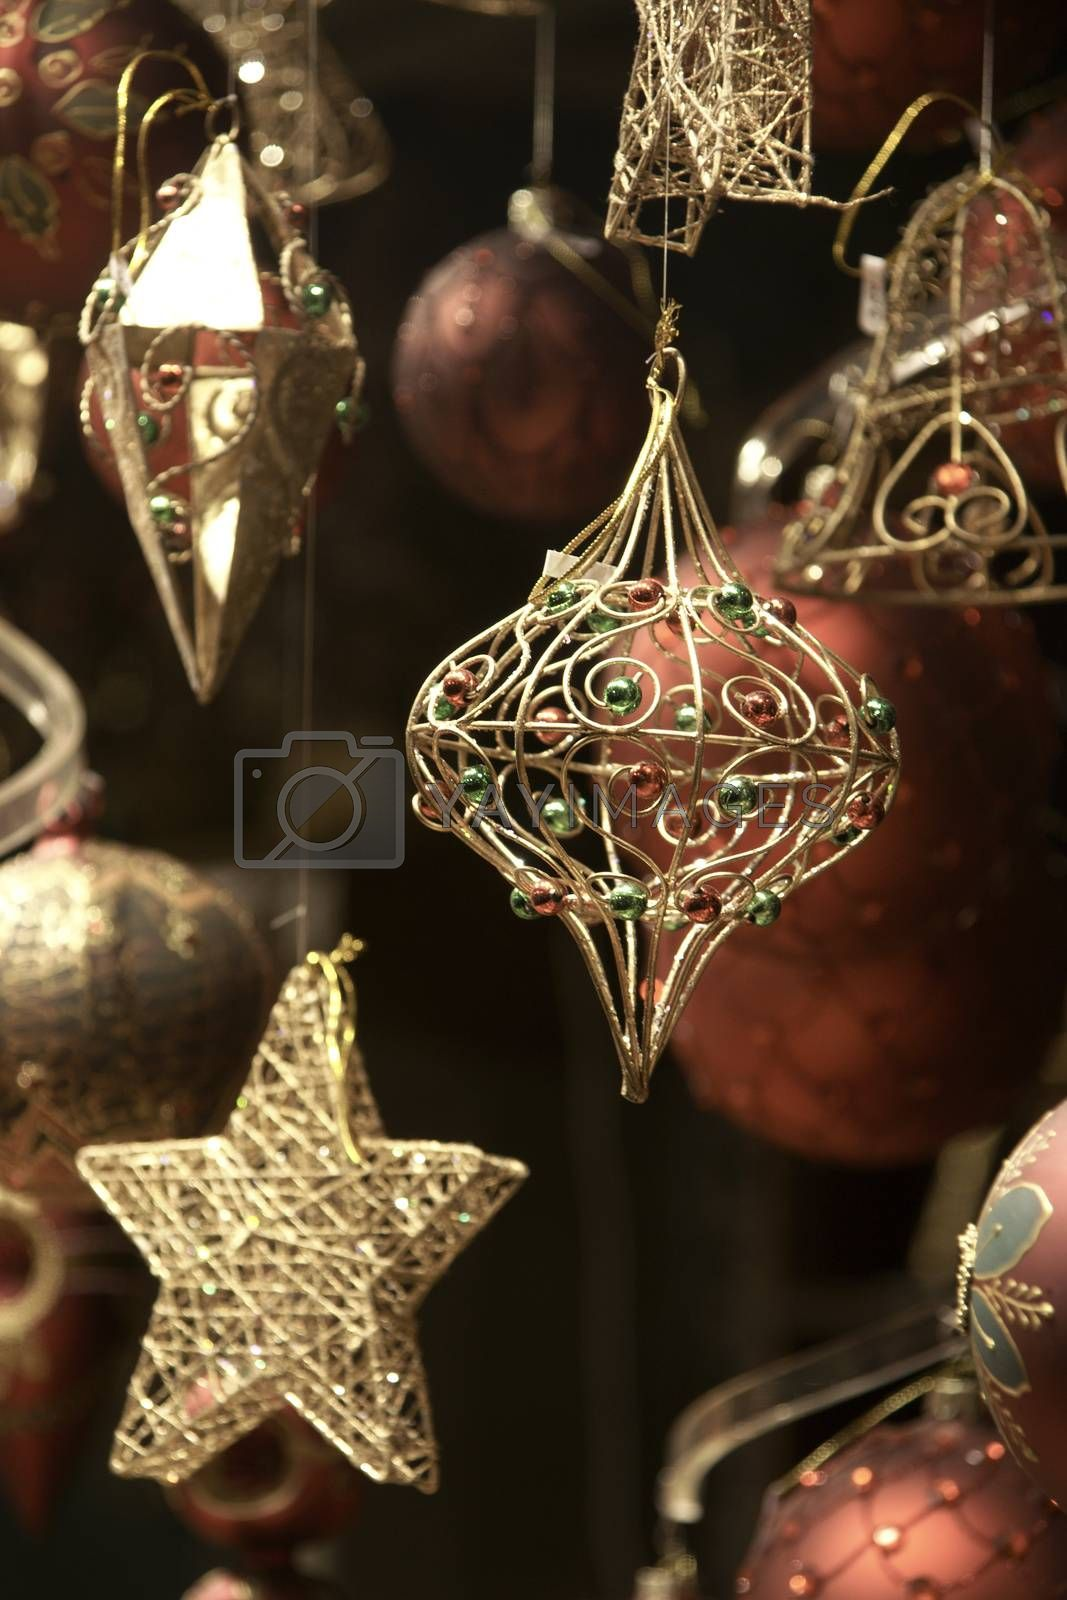 Celebrating merry christmas - winter holiday decorations